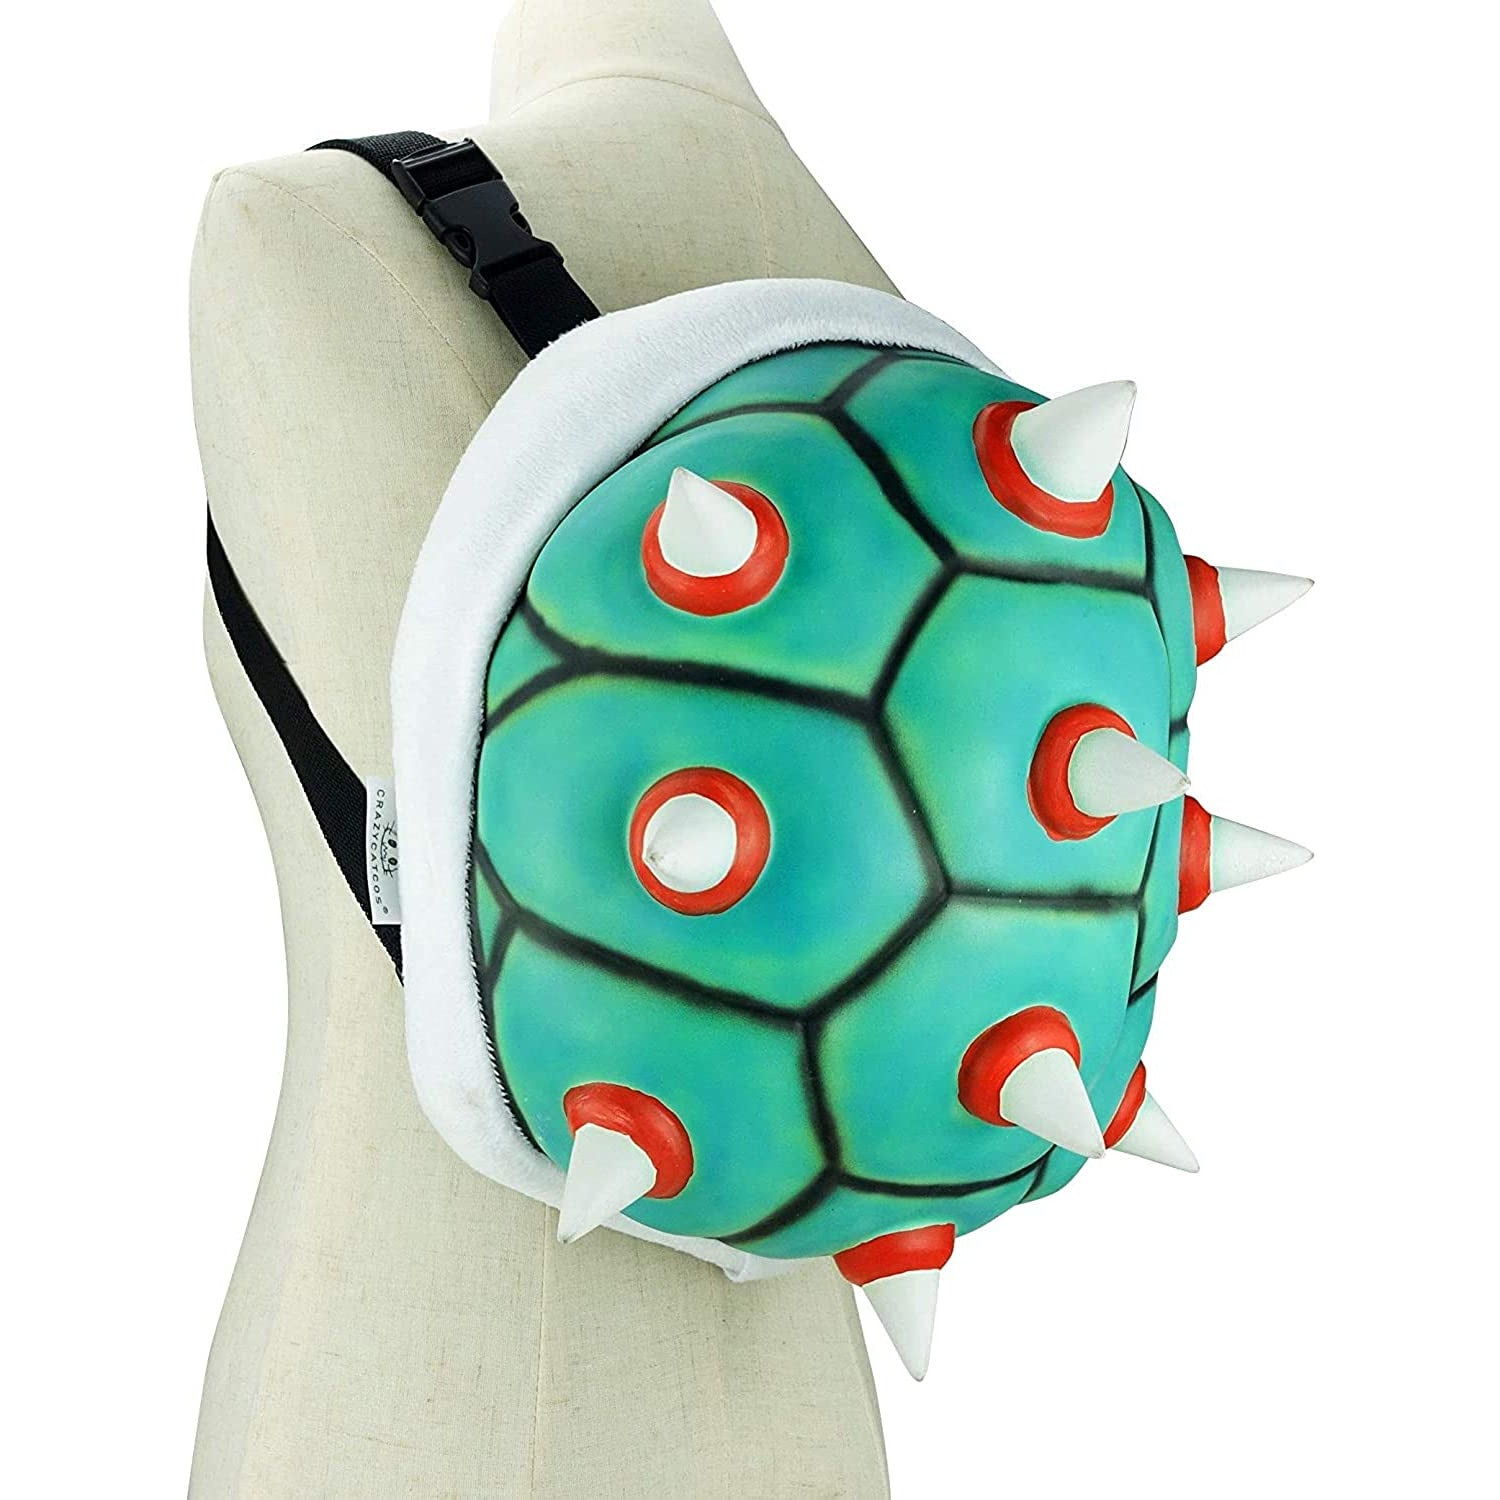 Koopa Troopa Backpack Turtle Style Spiked Shell Bag Cosplay Costume Prop from Super Mario Bowser Accessory